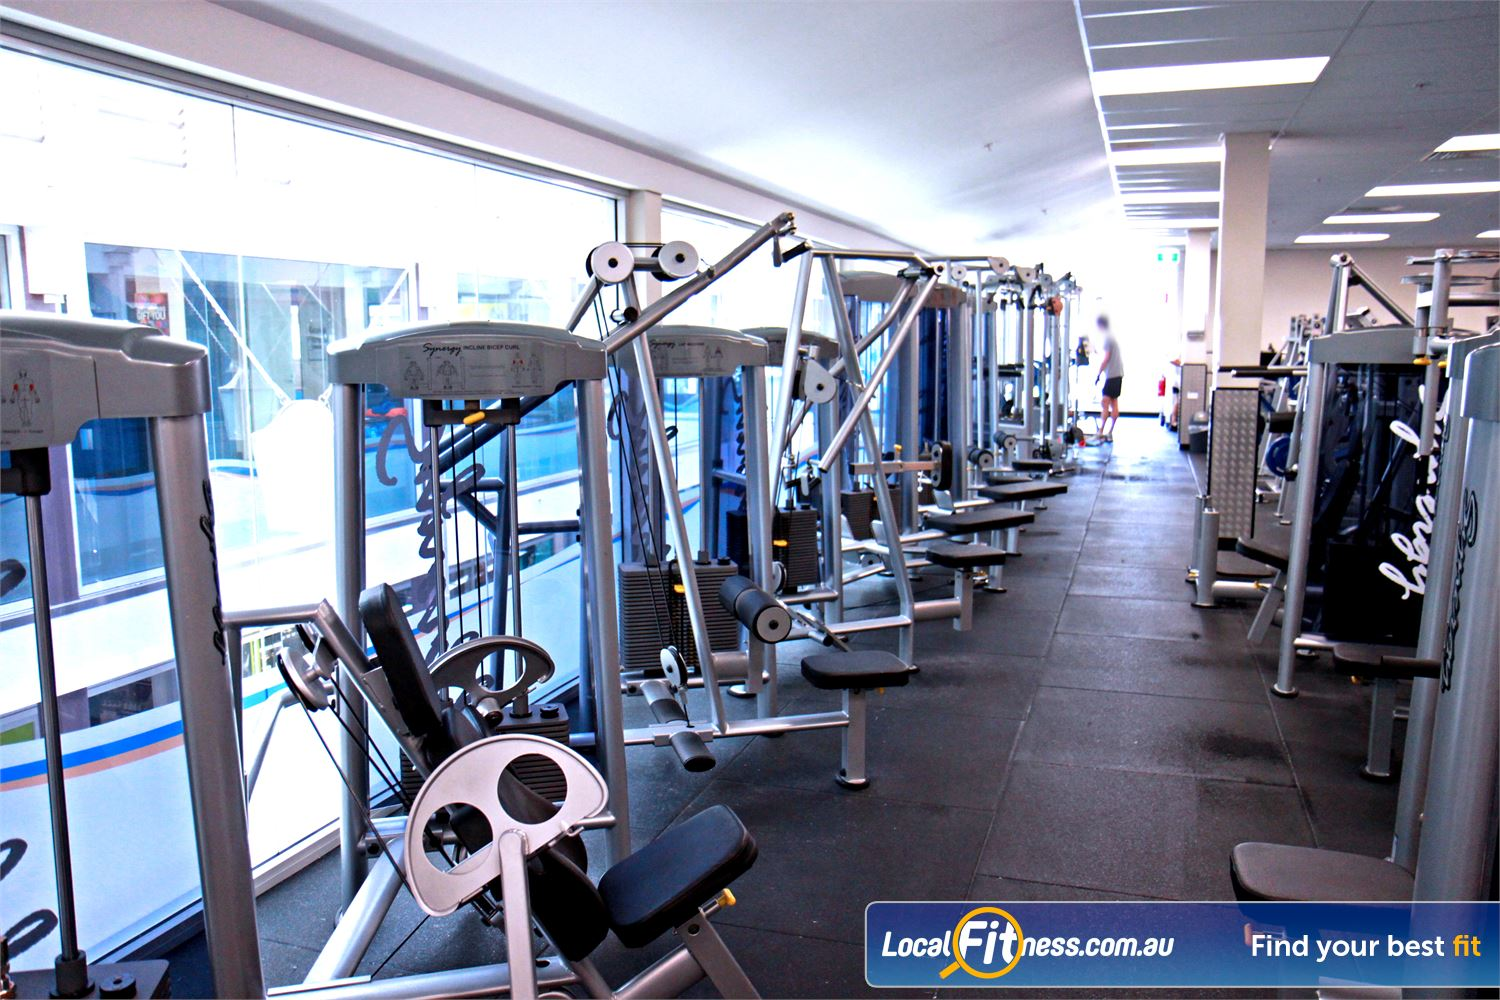 Goodlife Health Clubs North Adelaide The North Adelaide gym includes an extensive selection of equipment from Calgym and Hammer Strength.